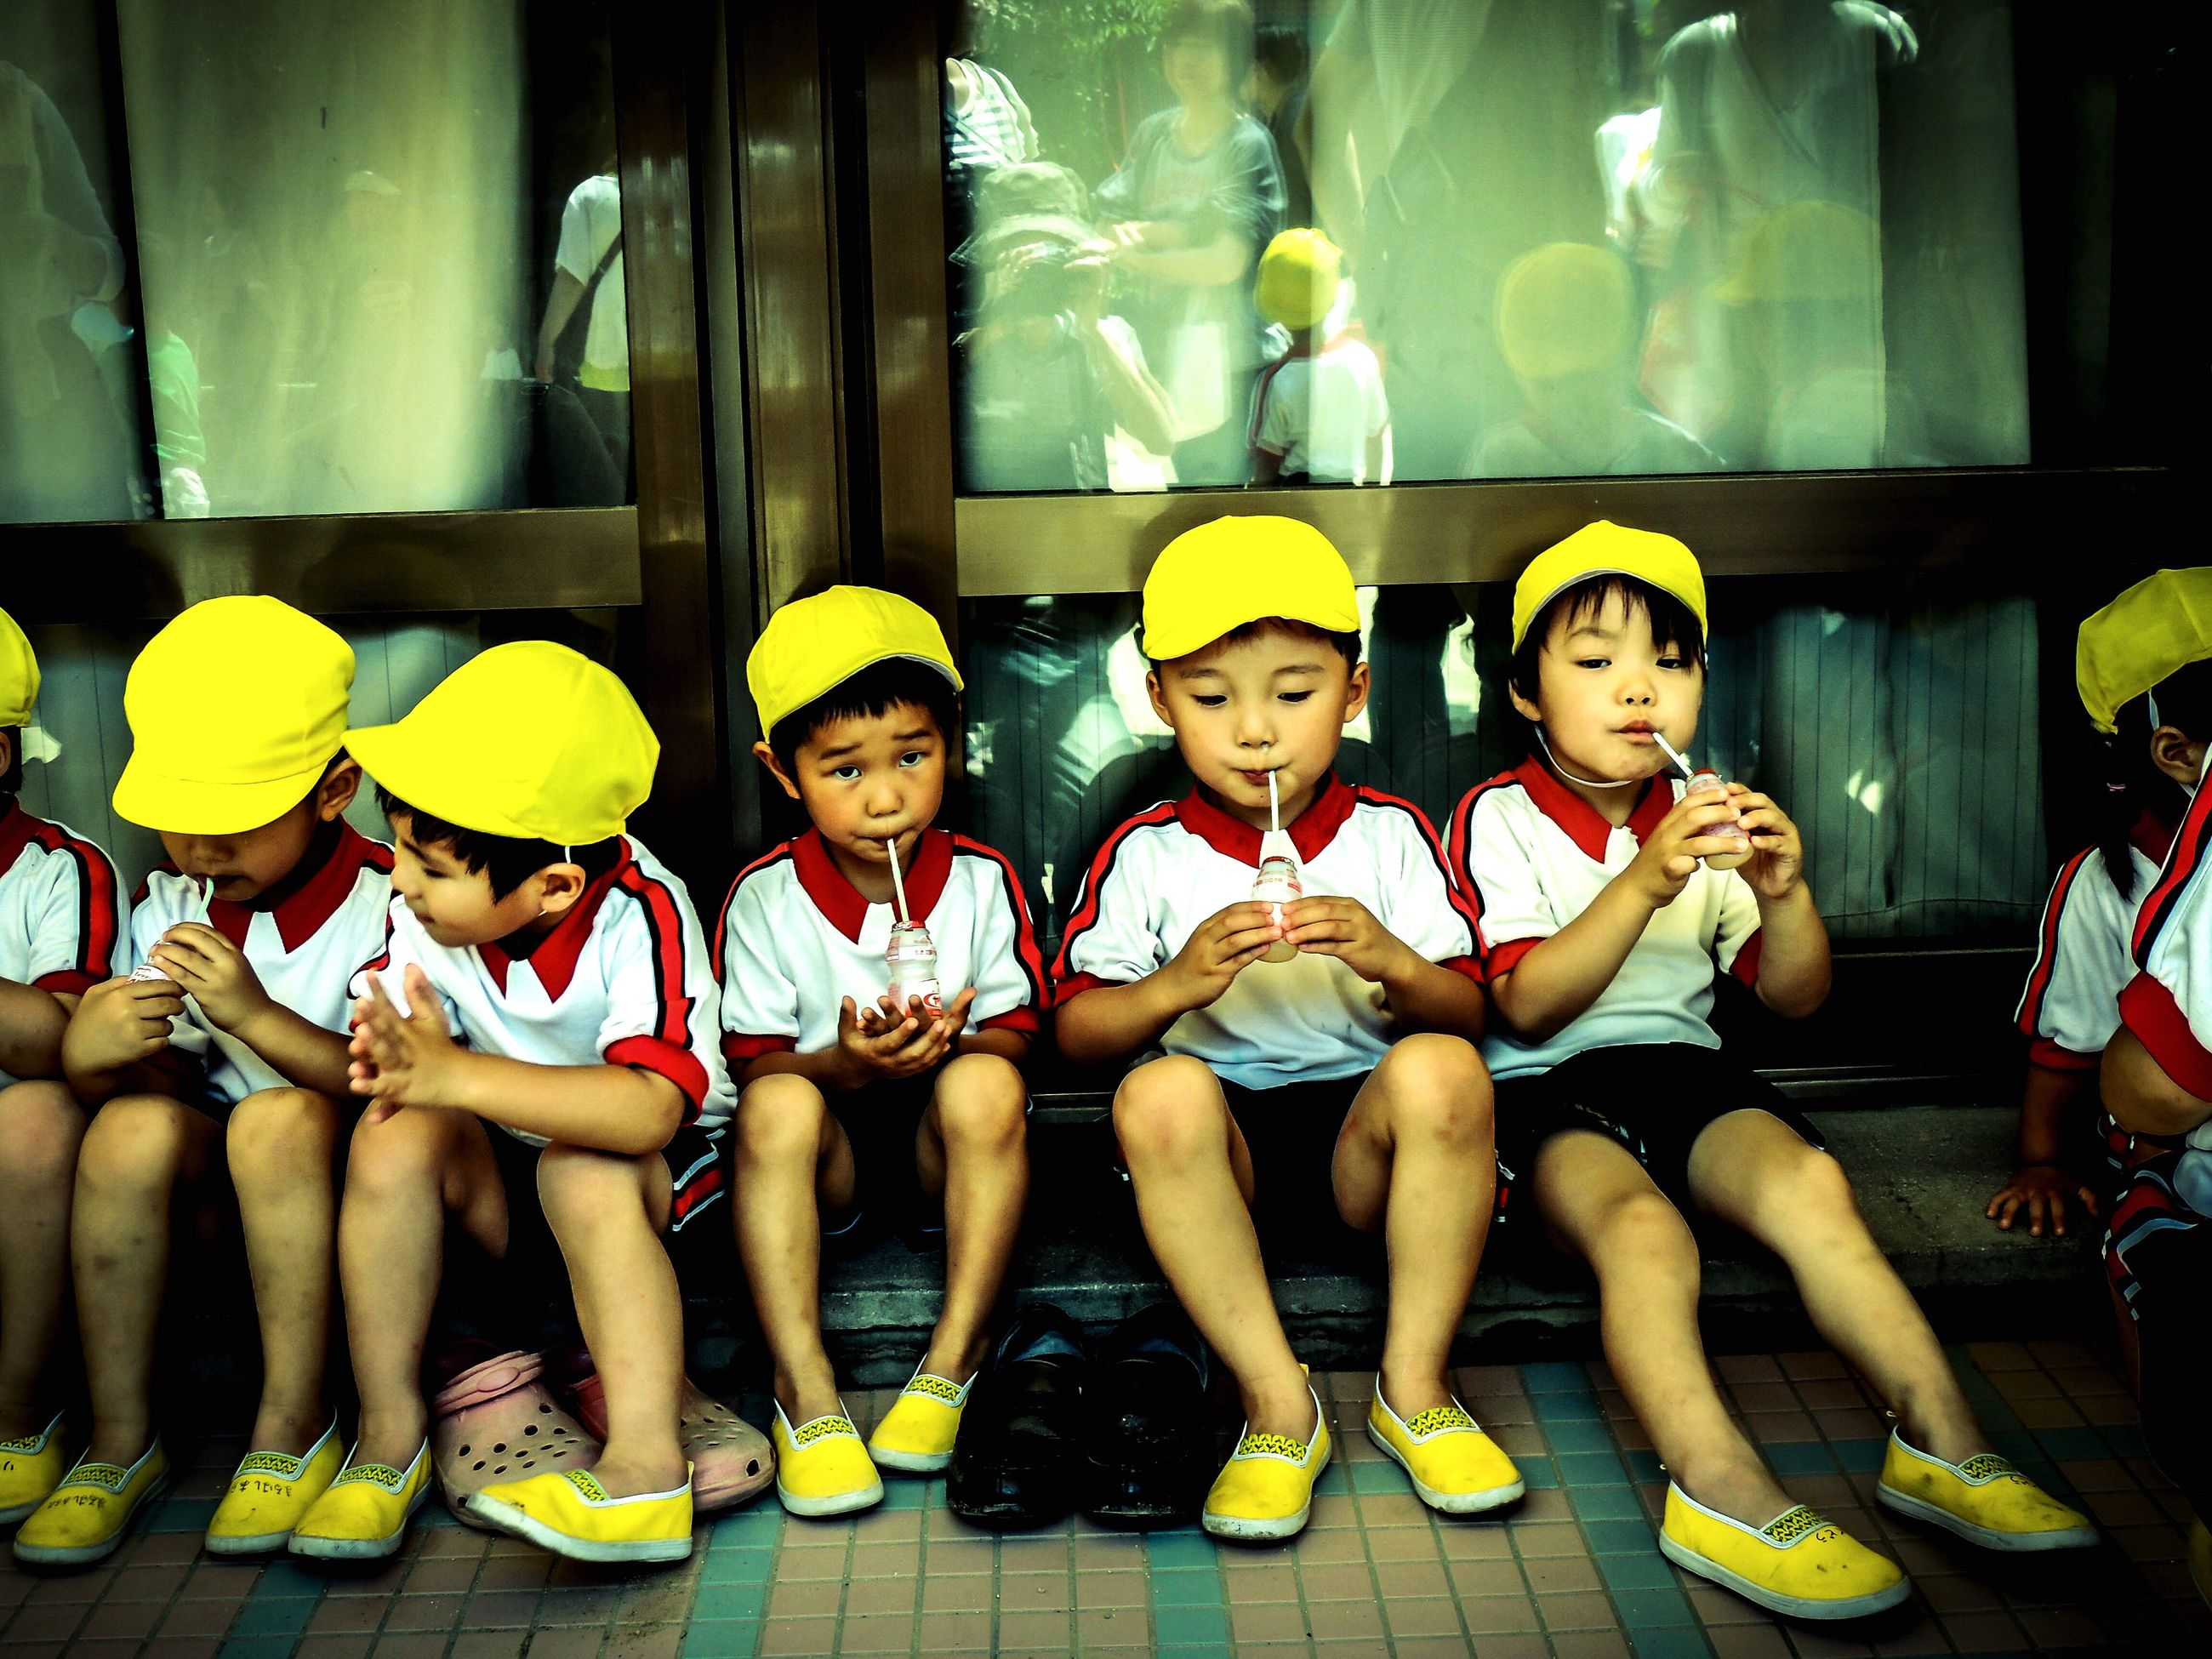 togetherness, childhood, leisure activity, front view, person, friend, event